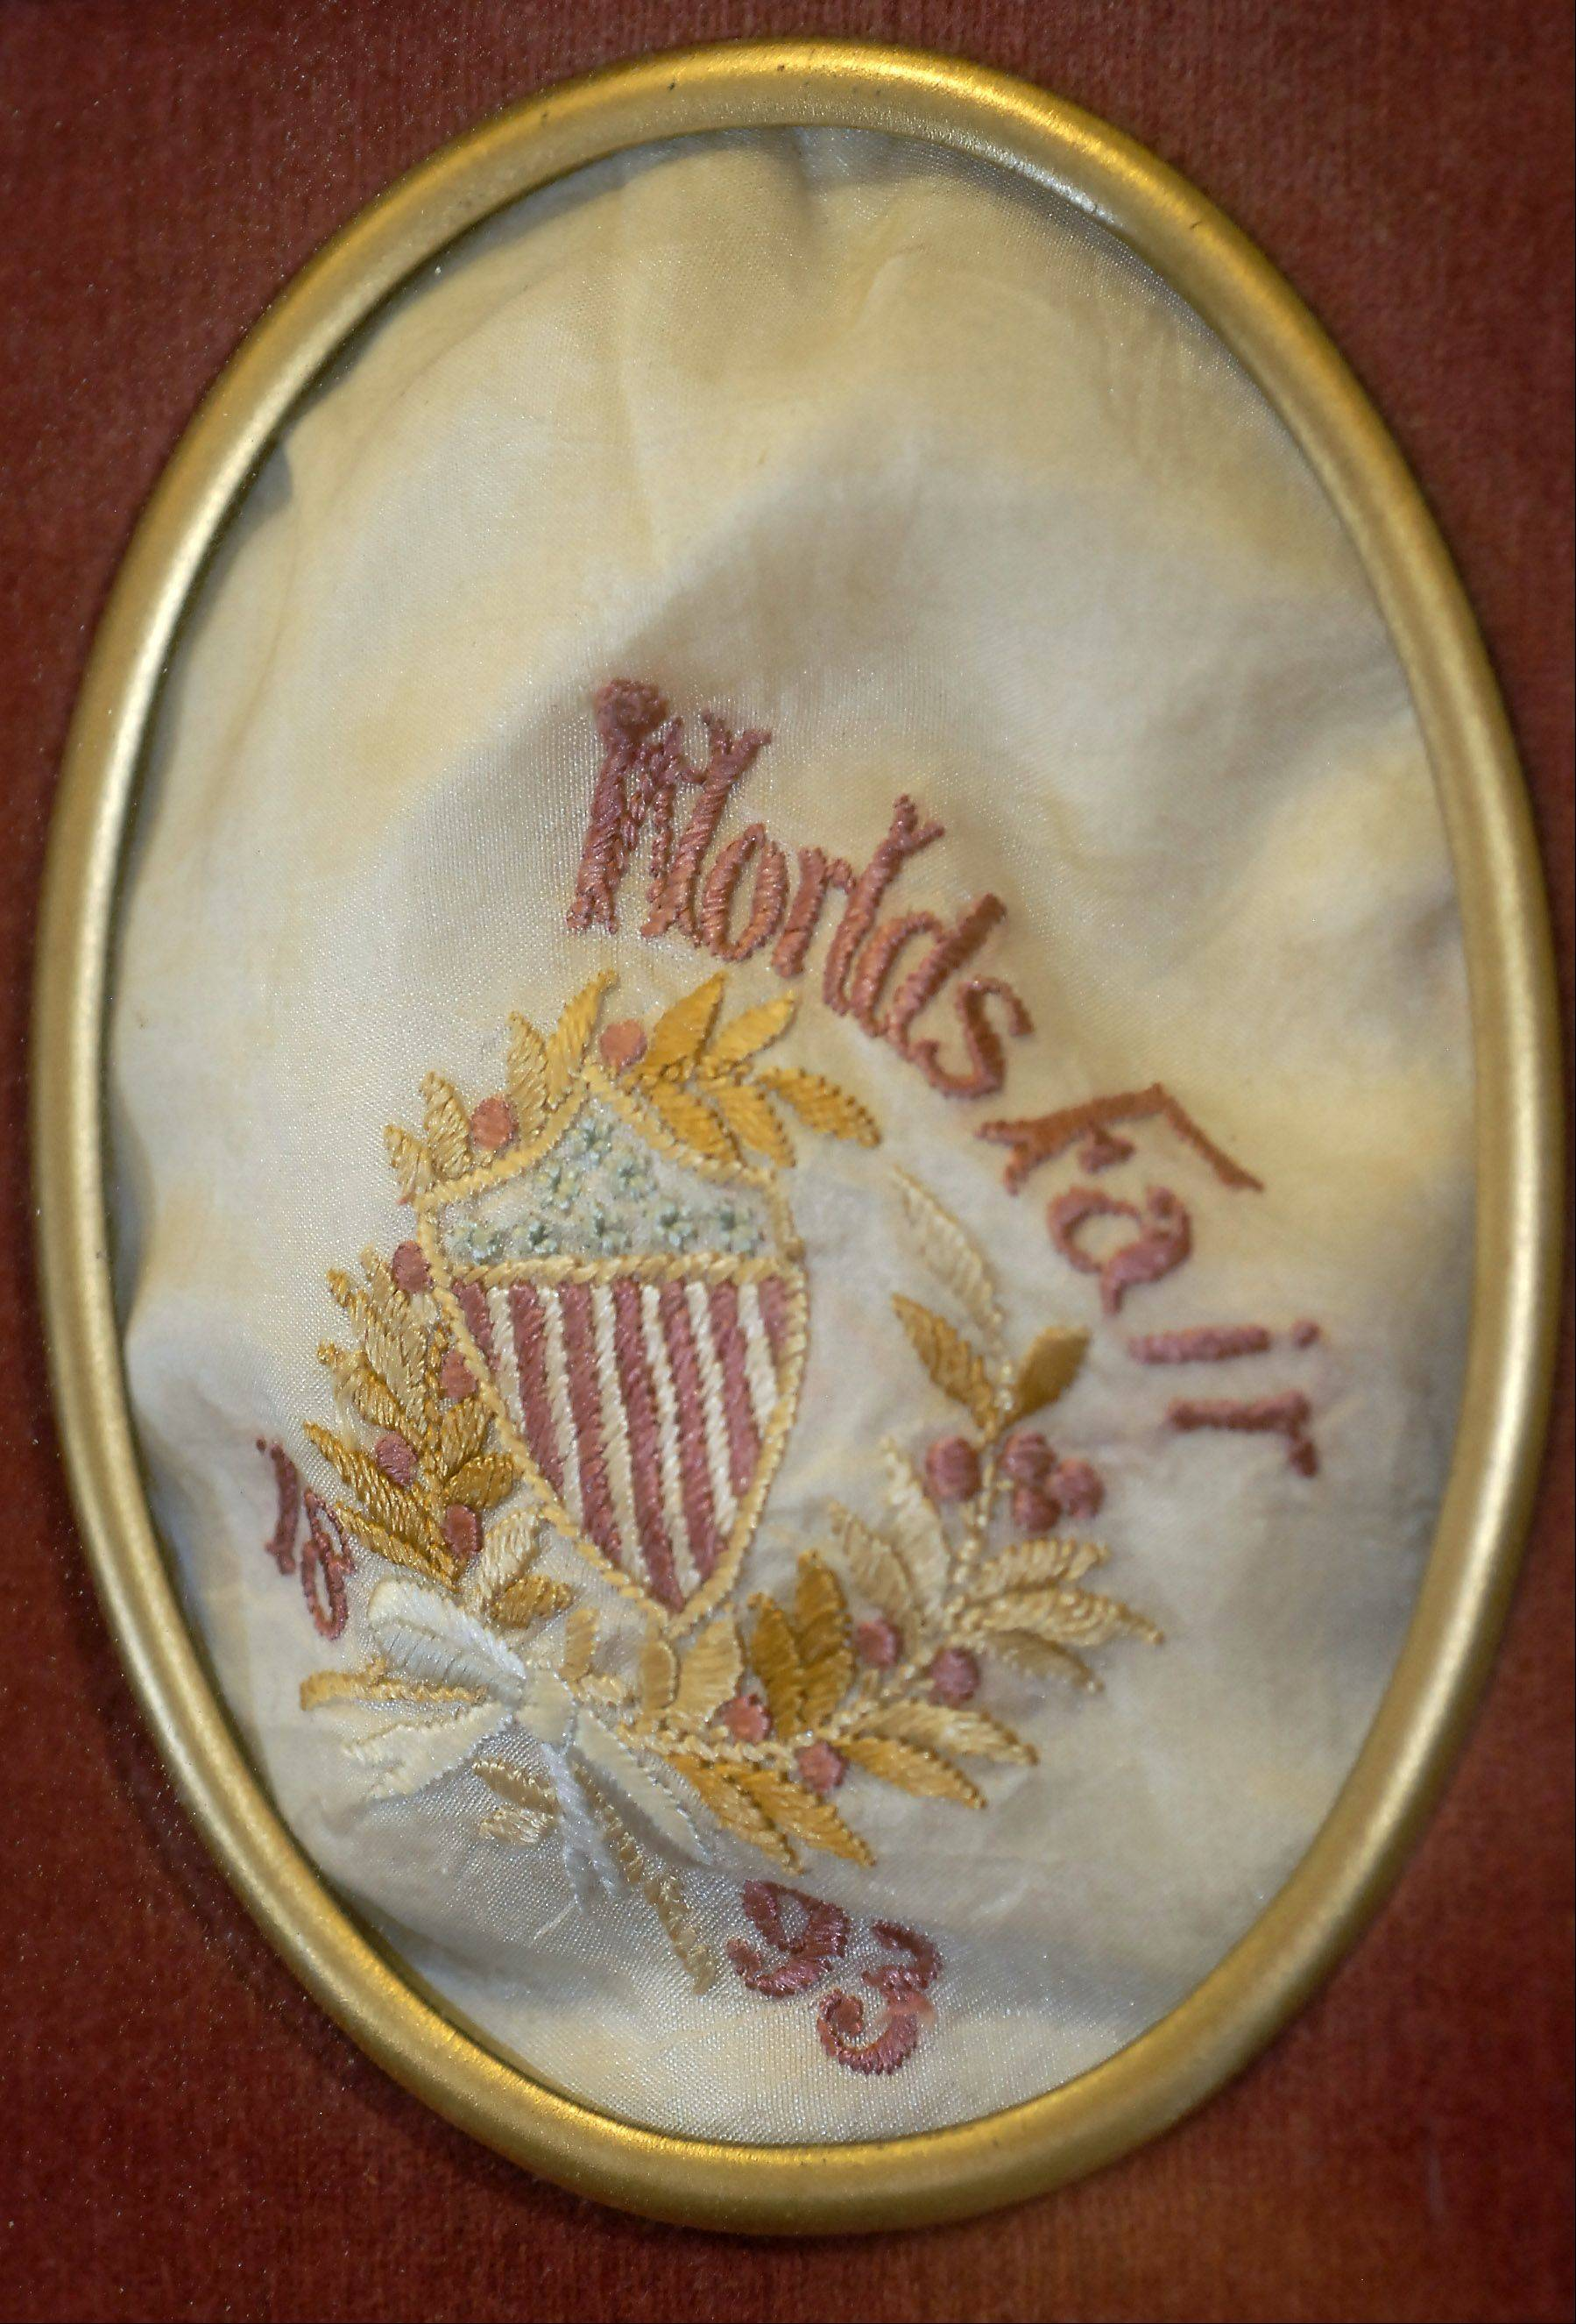 A piece of embroidered fabric was used at an official dinner celebrating the 1893 Columbian Exposition in Chicago.